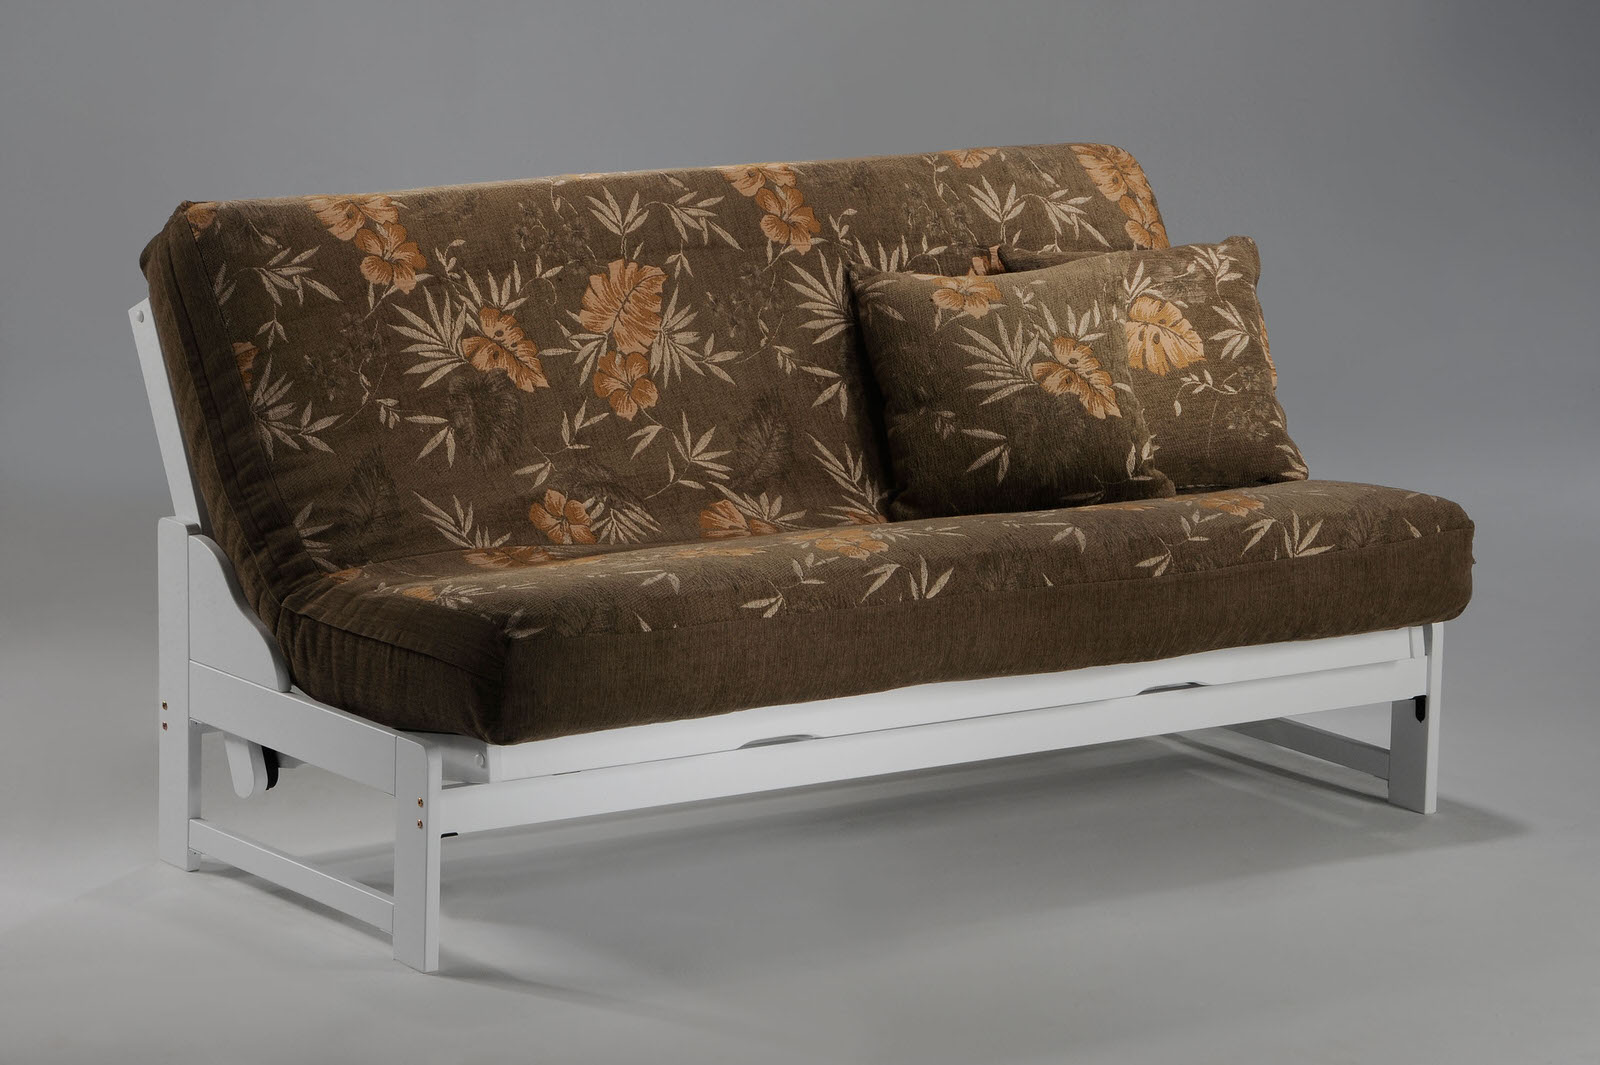 eureka standard futon frame by nightday furniture